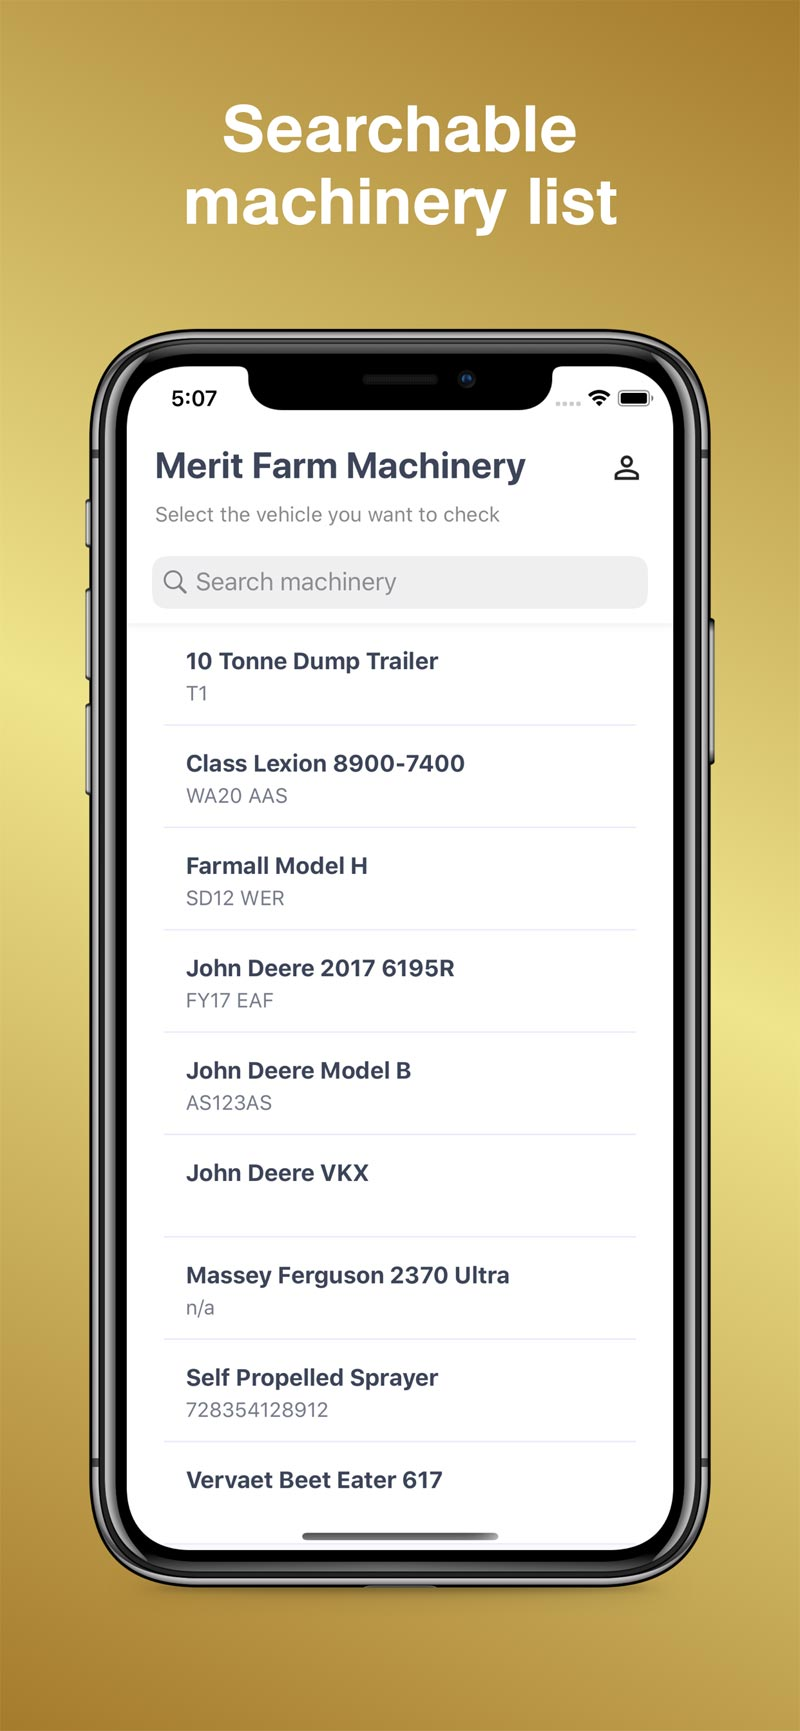 Merit AgCheck App Screenshot - Machinery List